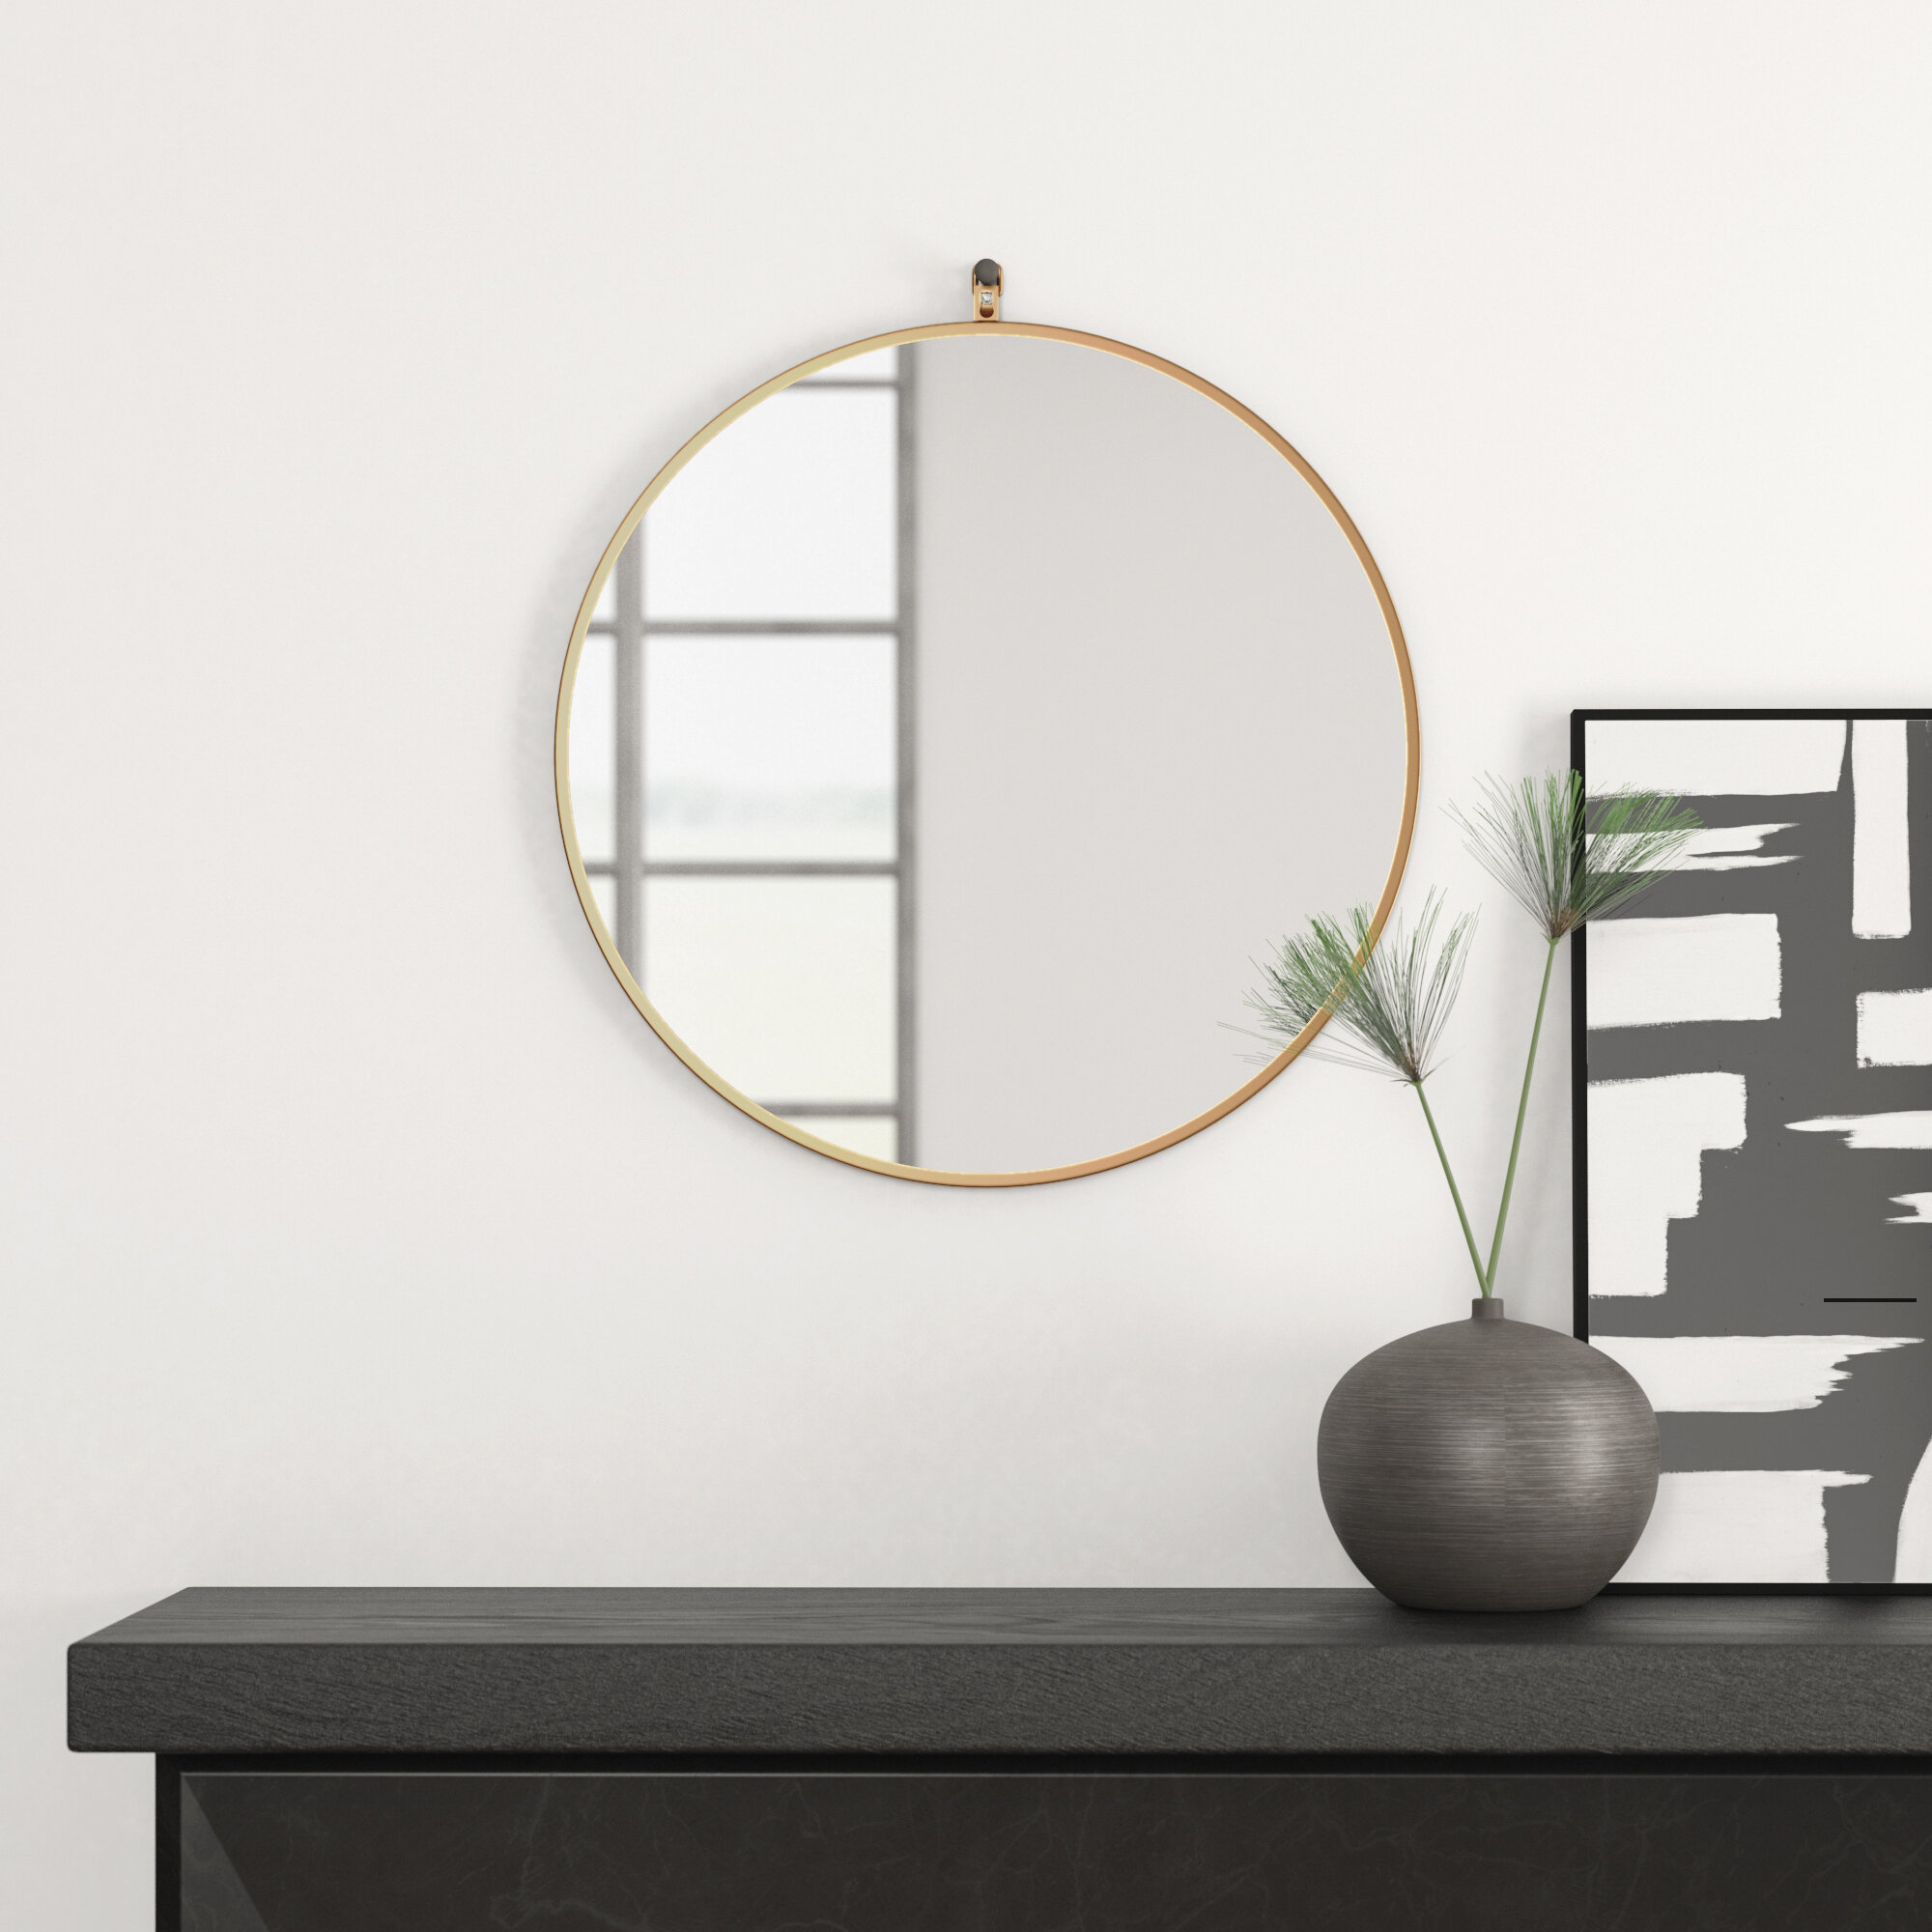 Yedinak Modern Distressed Accent Mirror With Oval Metallic Accent Mirrors (View 16 of 20)